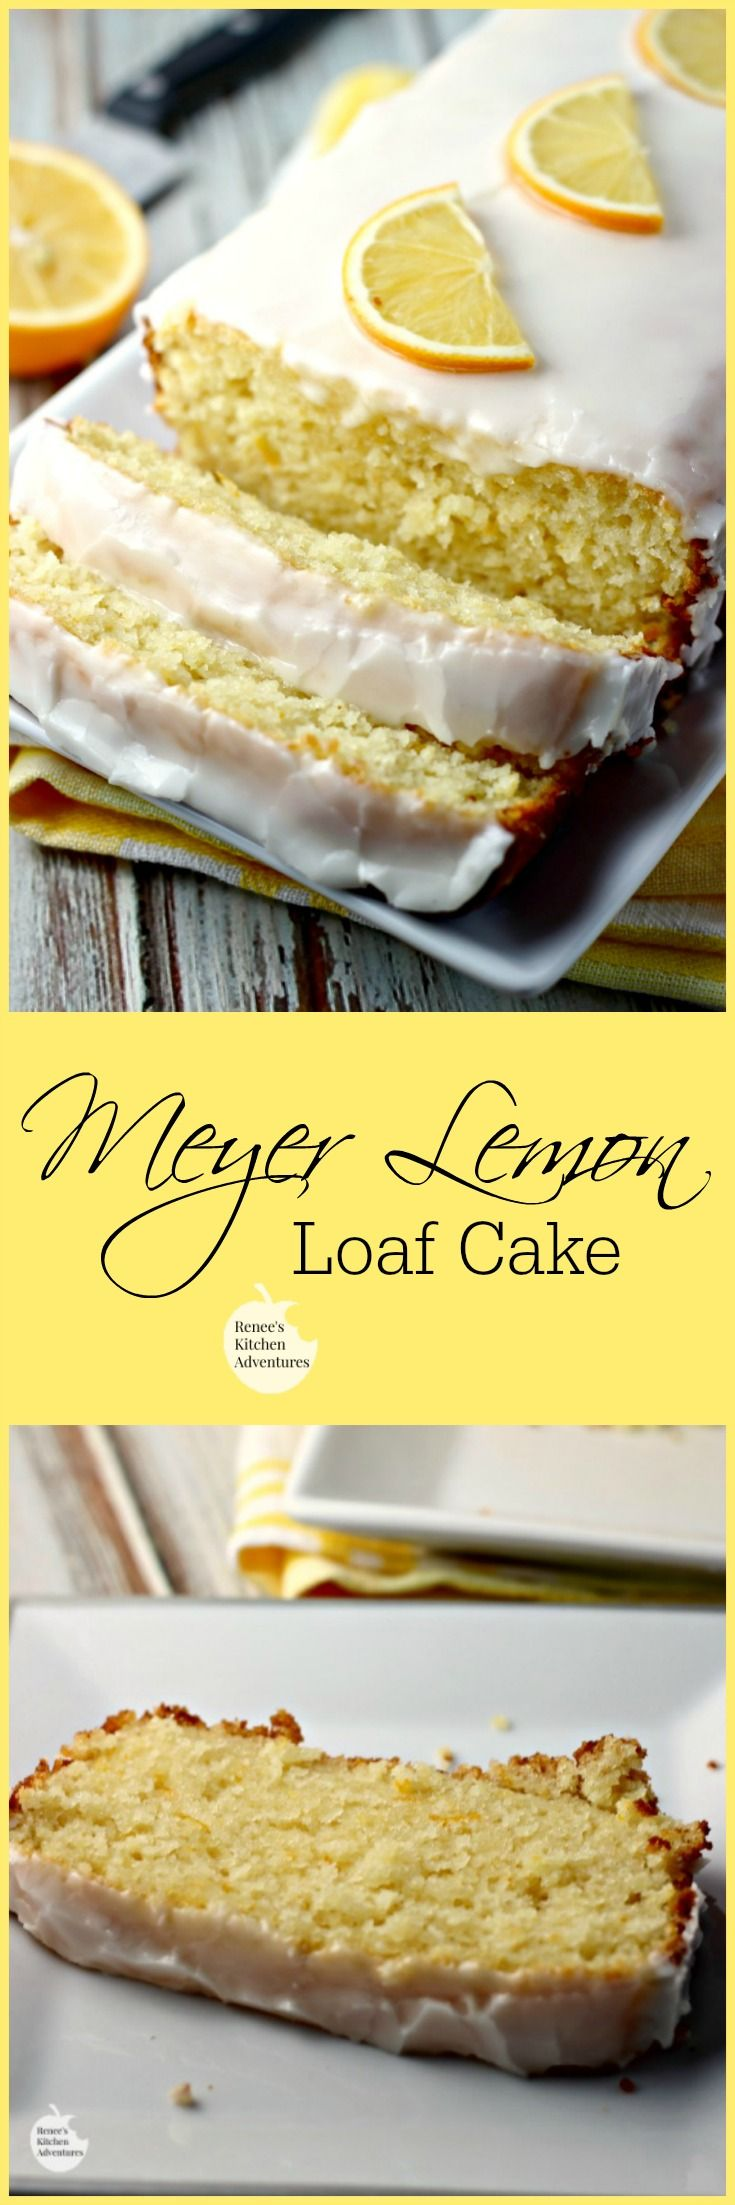 Meyer Lemon Loaf Cake | Renee's Kitchen Adventures:  Moist, lemony and absolutely wonderful.  One of the BEST lemon cake I have made!